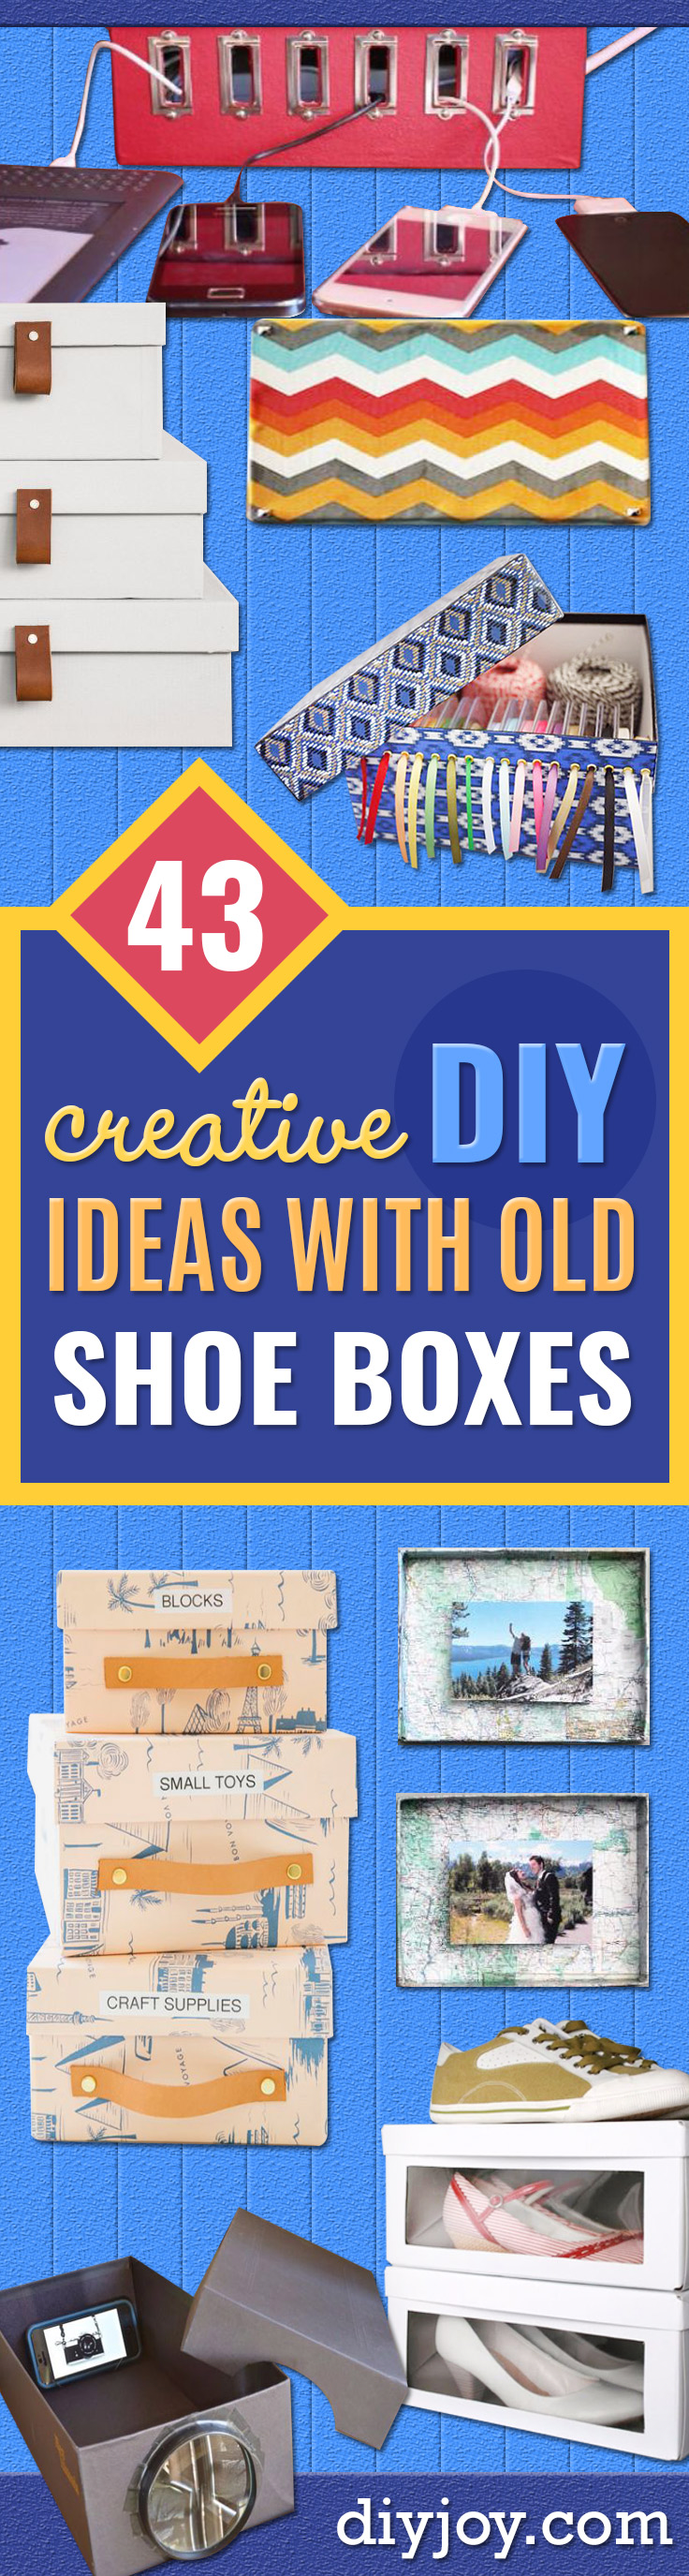 DIY Ideas With Shoe Boxes - Shoe Box Crafts and Organizers for Storage - How To Make A Shelf, Makeup Organizer, Kids Room Decoration, Storage Ideas Projects - Cheap Home Decor DIY Ideas for Kids, Adults and Teens Rooms